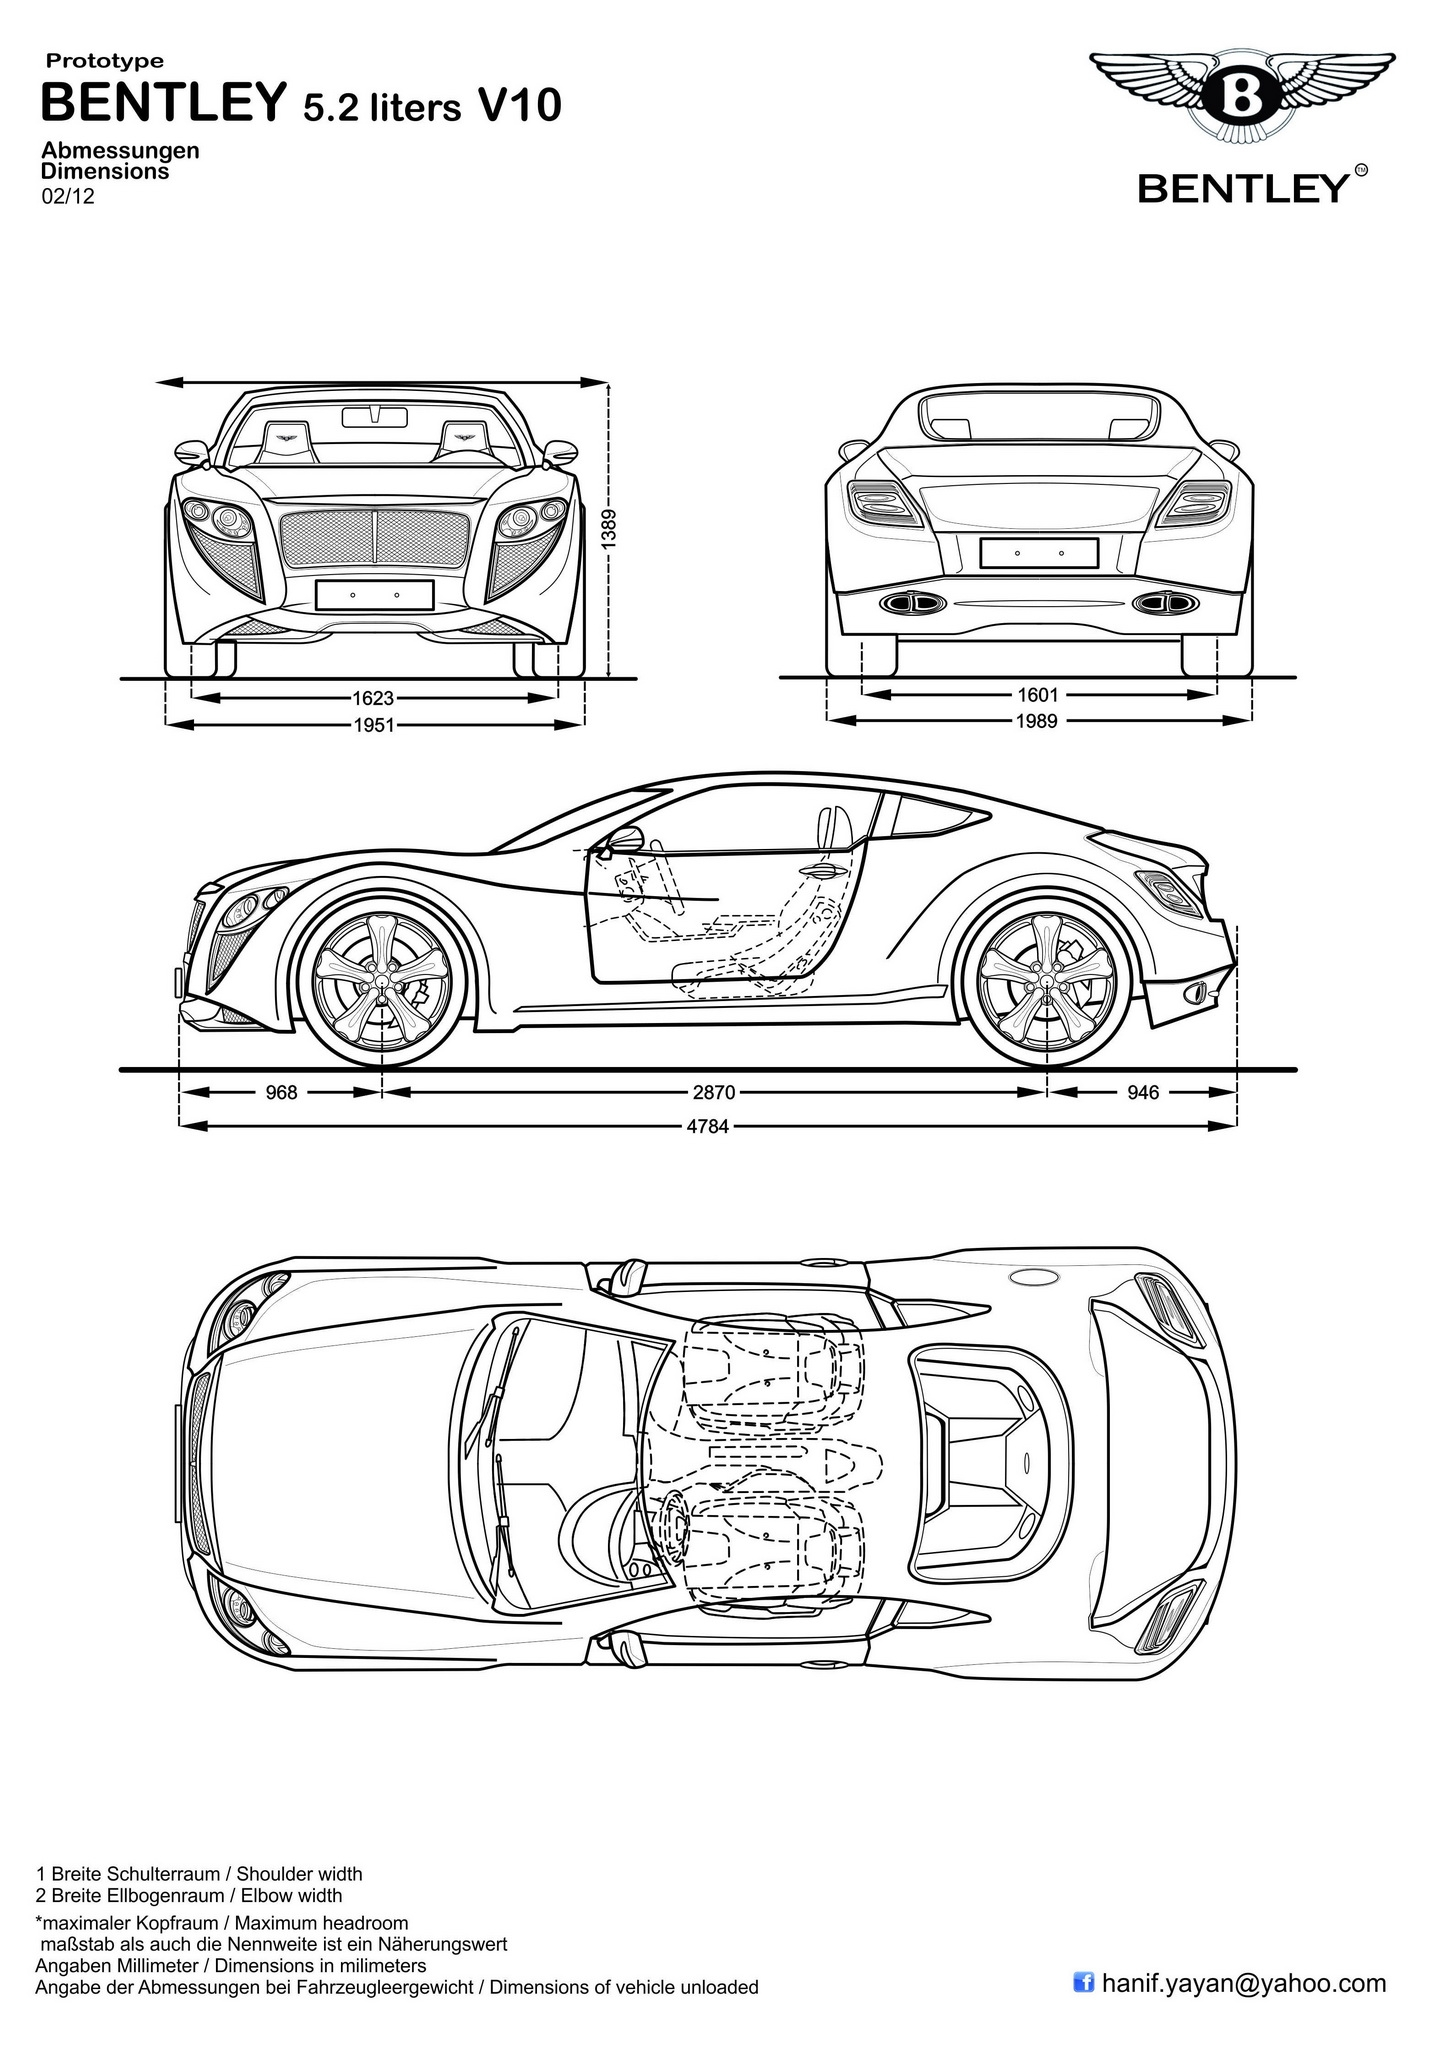 star trek coloring pages - Bentley V10 5 2L Concept Blueprints Design